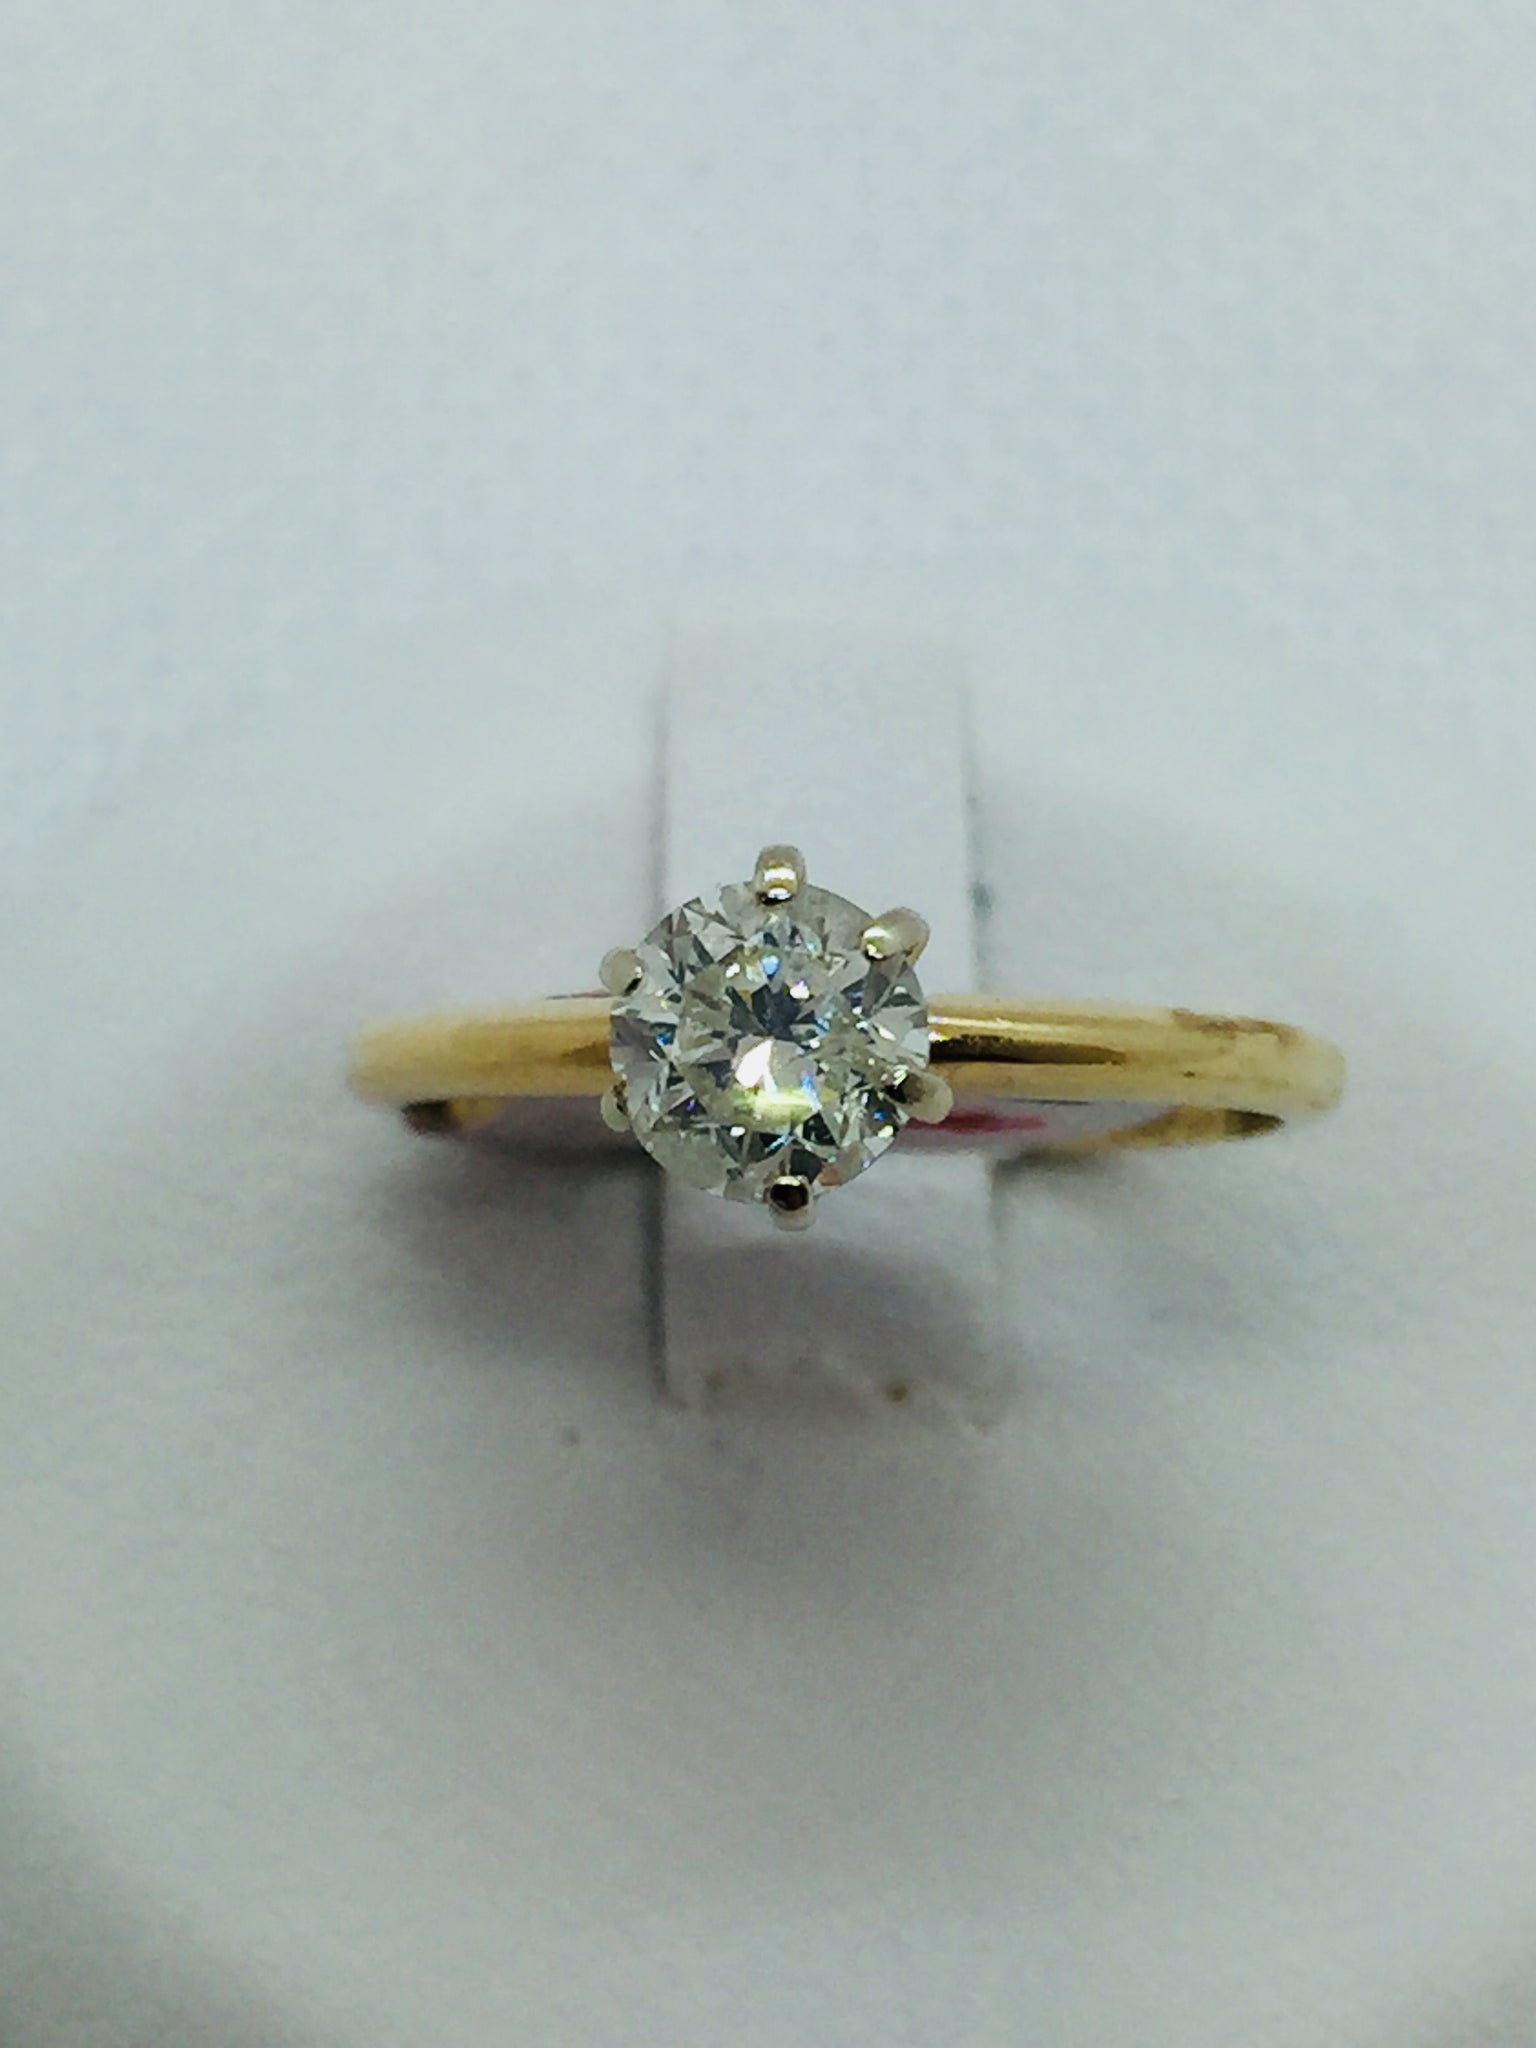 Vintage 14k Solid Gold Diamond Solitare Engagement Ring